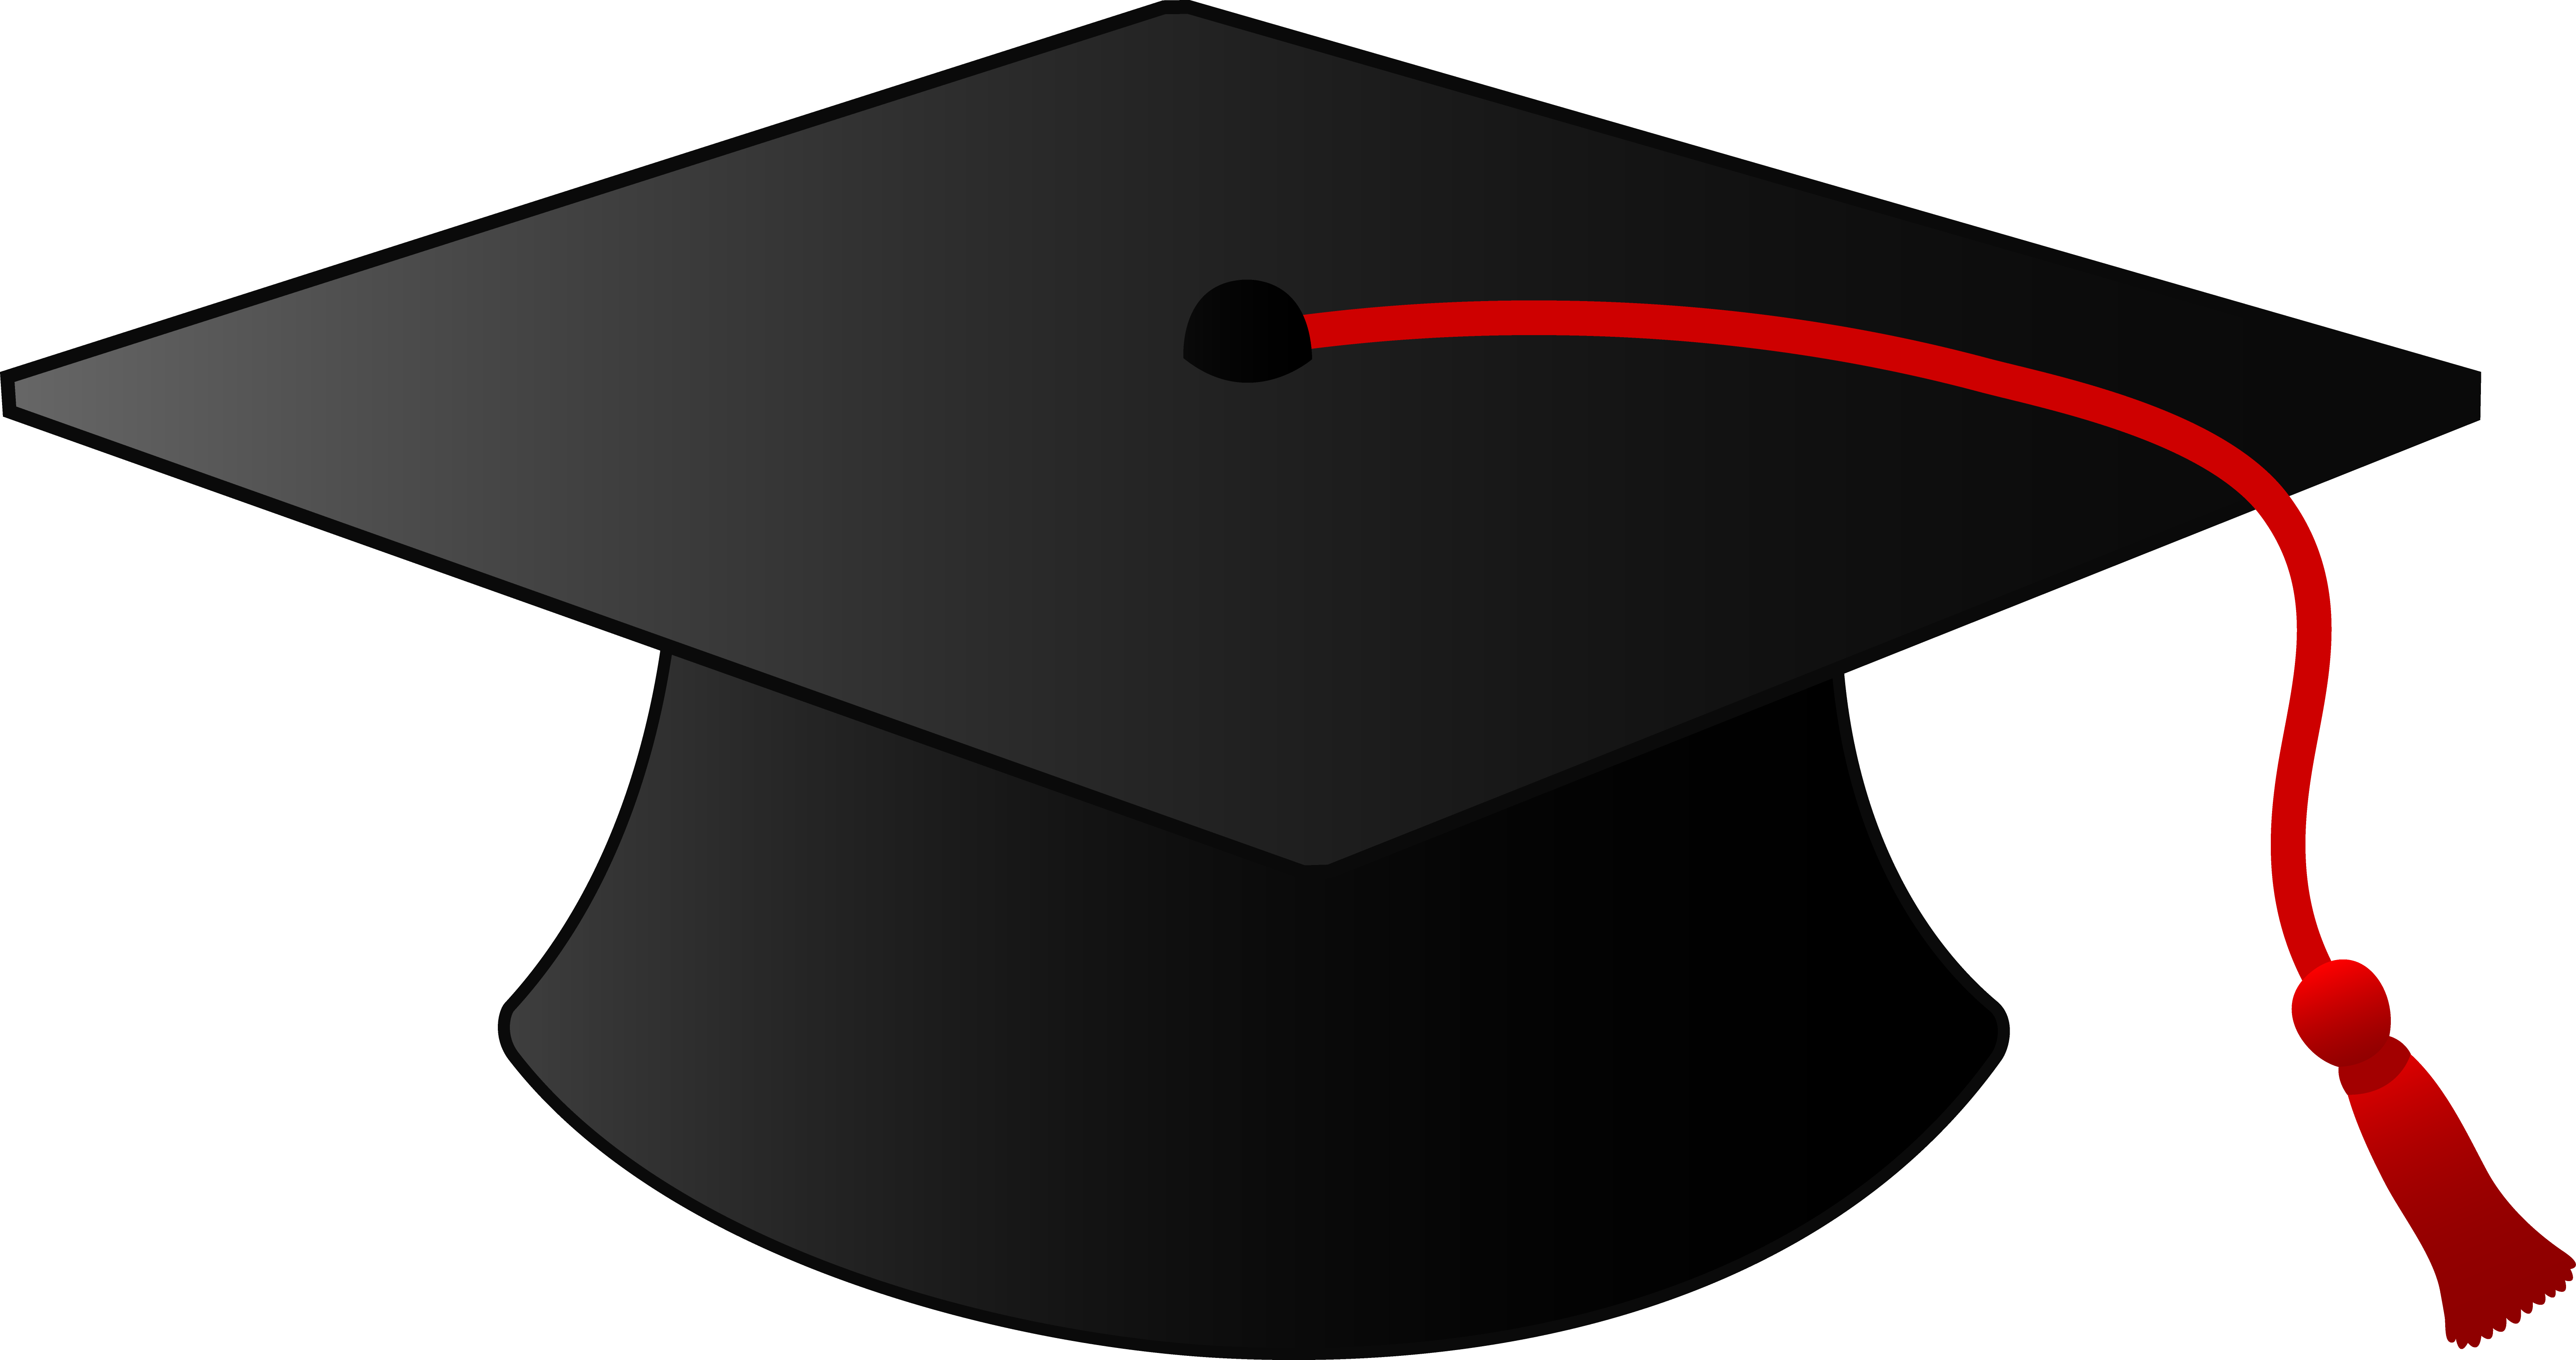 Free clipart of graduation caps. Cap hat education wikiclipart